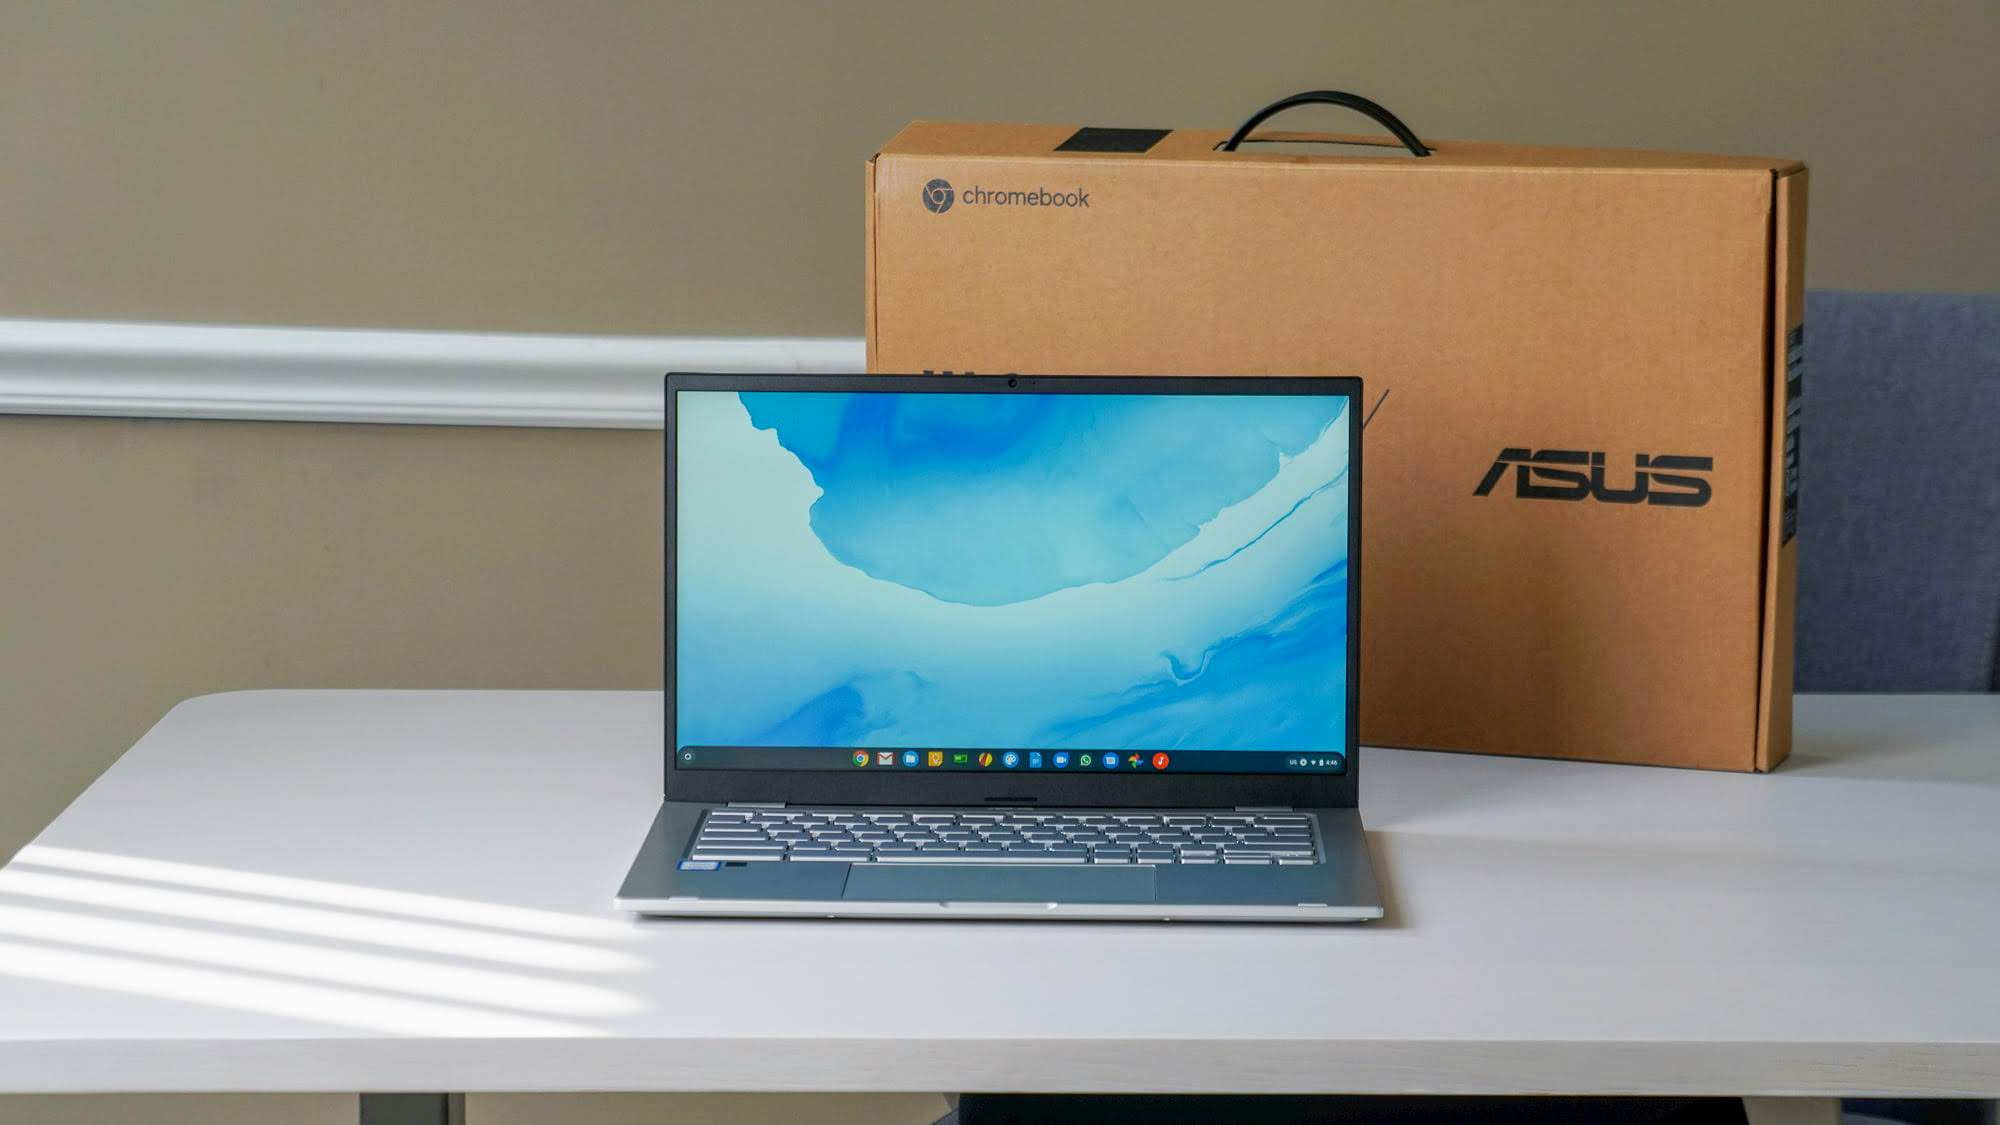 The latest Chromebook from ASUS is now priced to sell